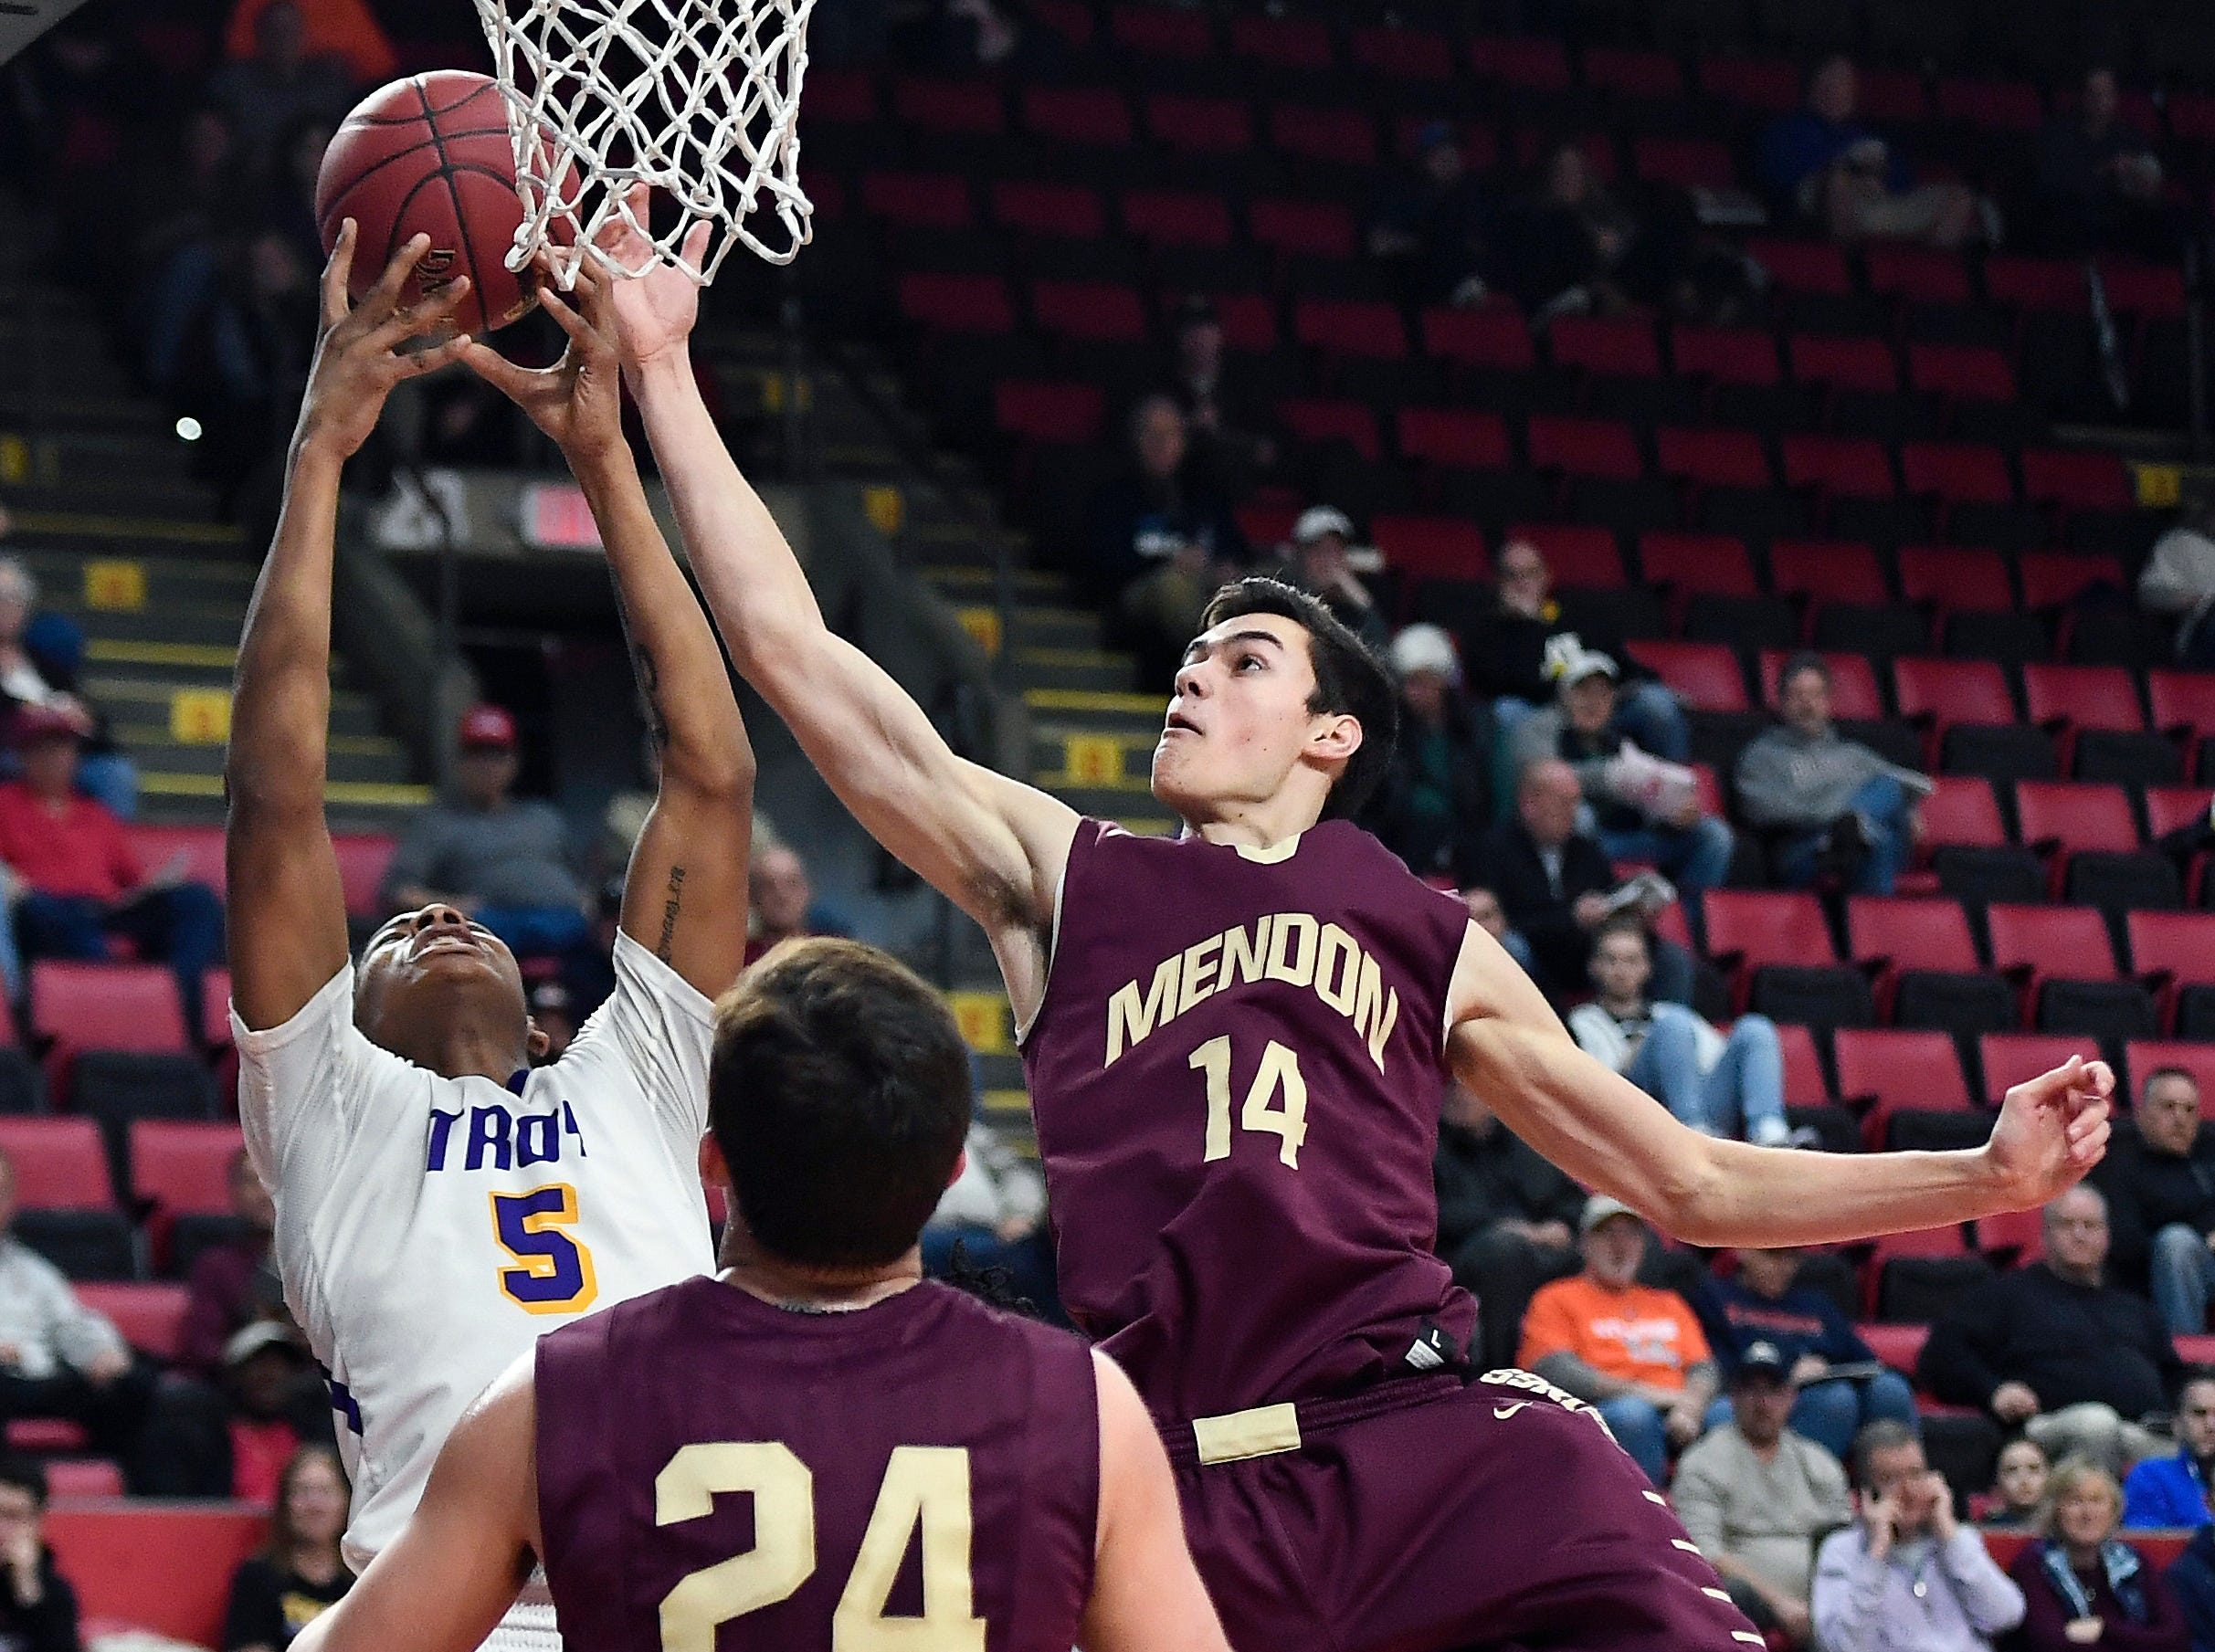 Pittsford Mendon's Dan Cook, right, reaches for a rebound against Troy's Lateef Johnson.